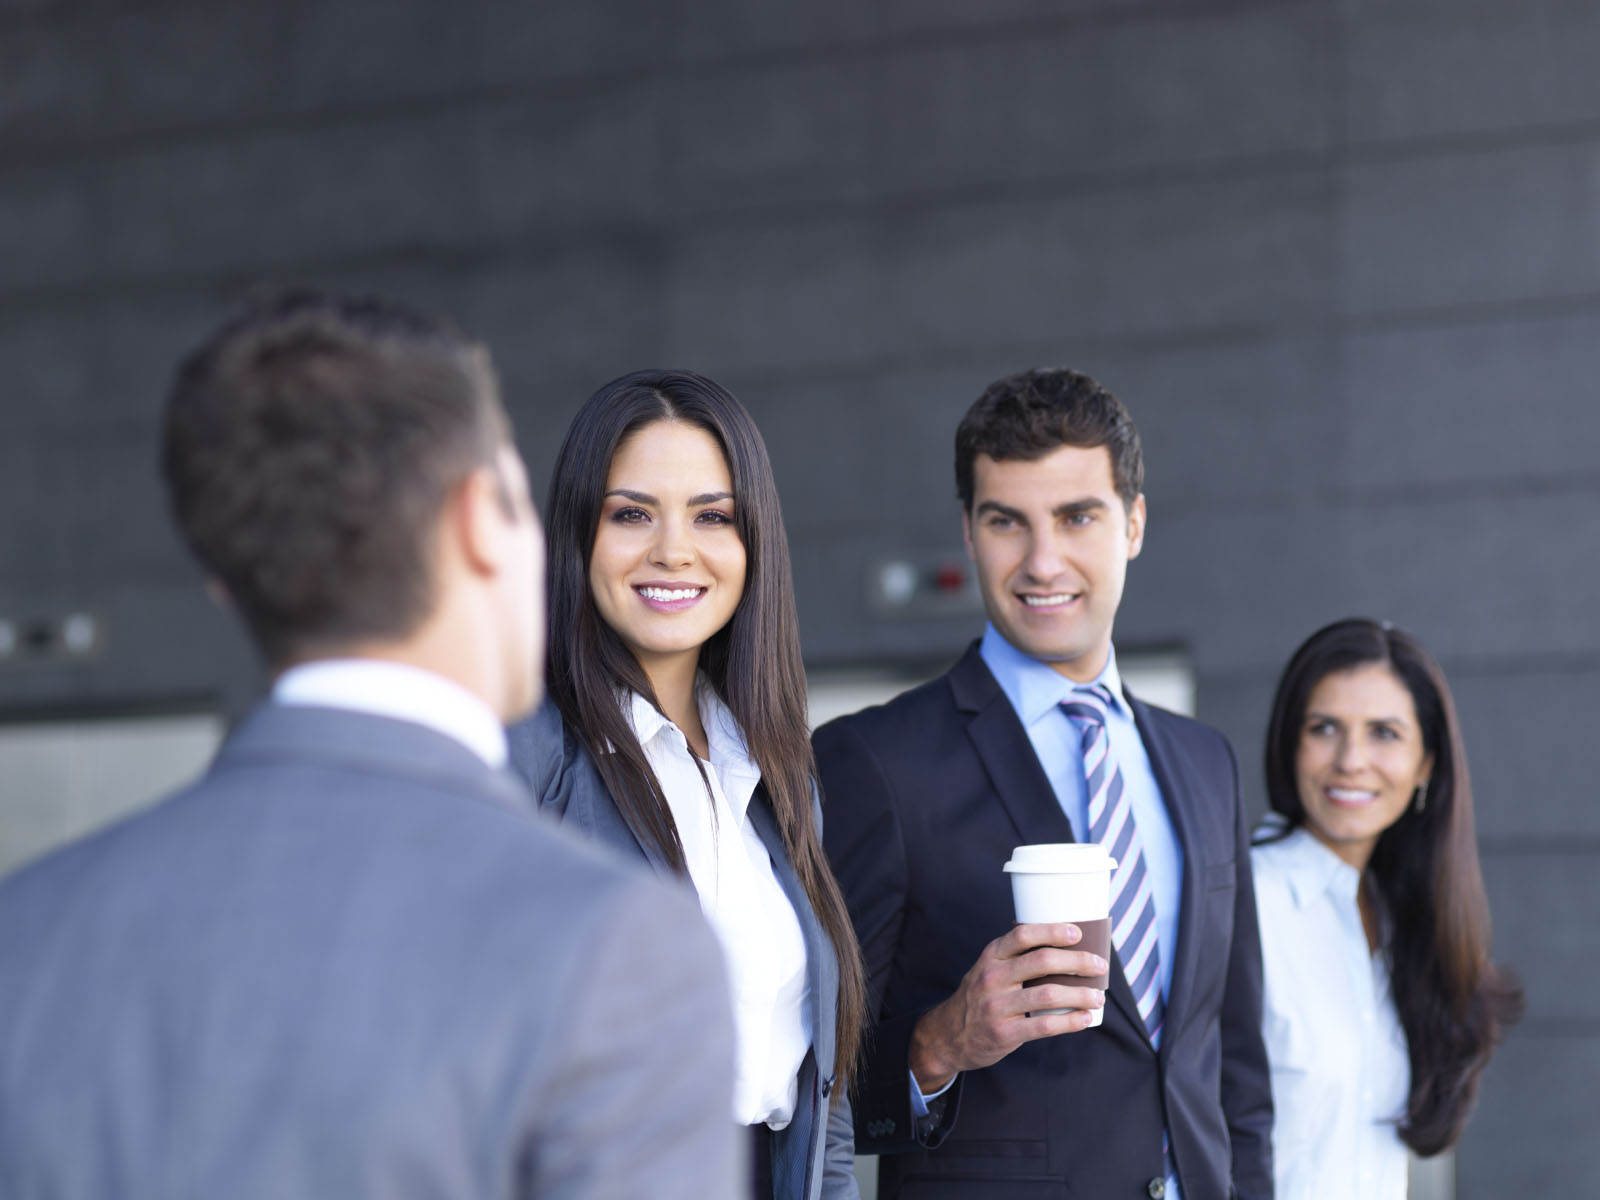 5 truths of business meetings in Latin America